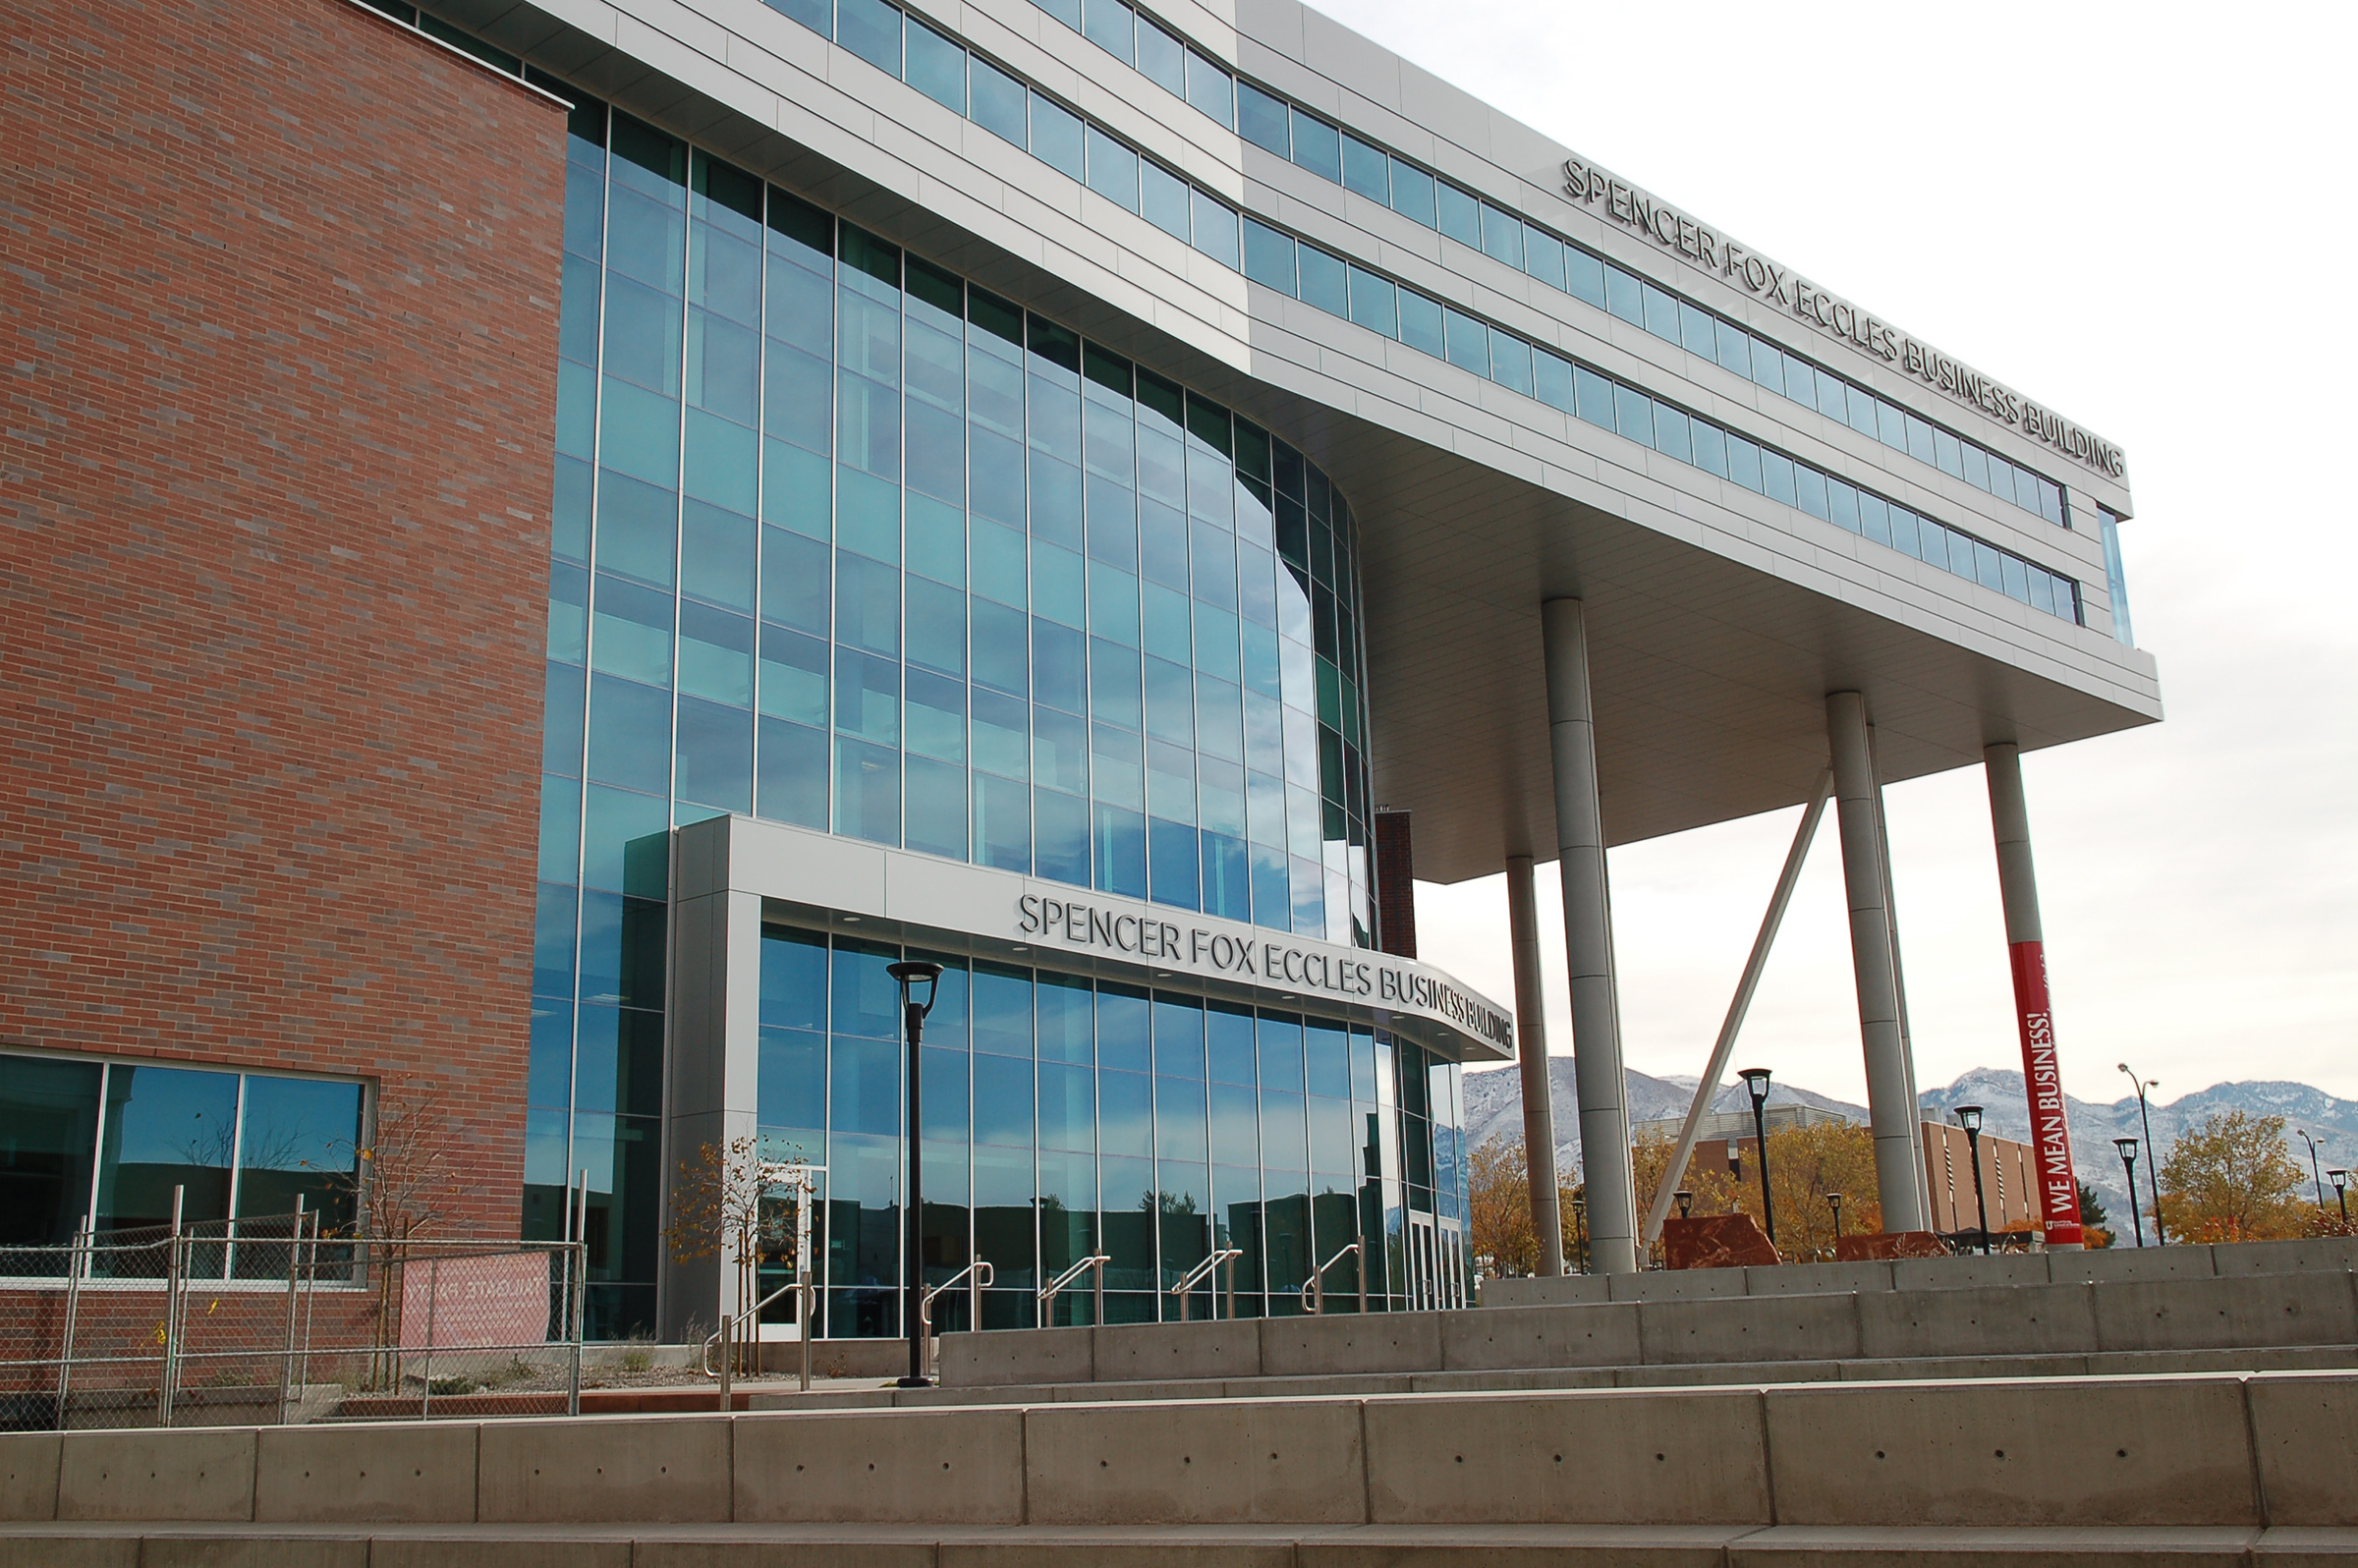 The Spencer Fox Eccles Business building is the newest building at the University of Utah's David Eccles School of Business.